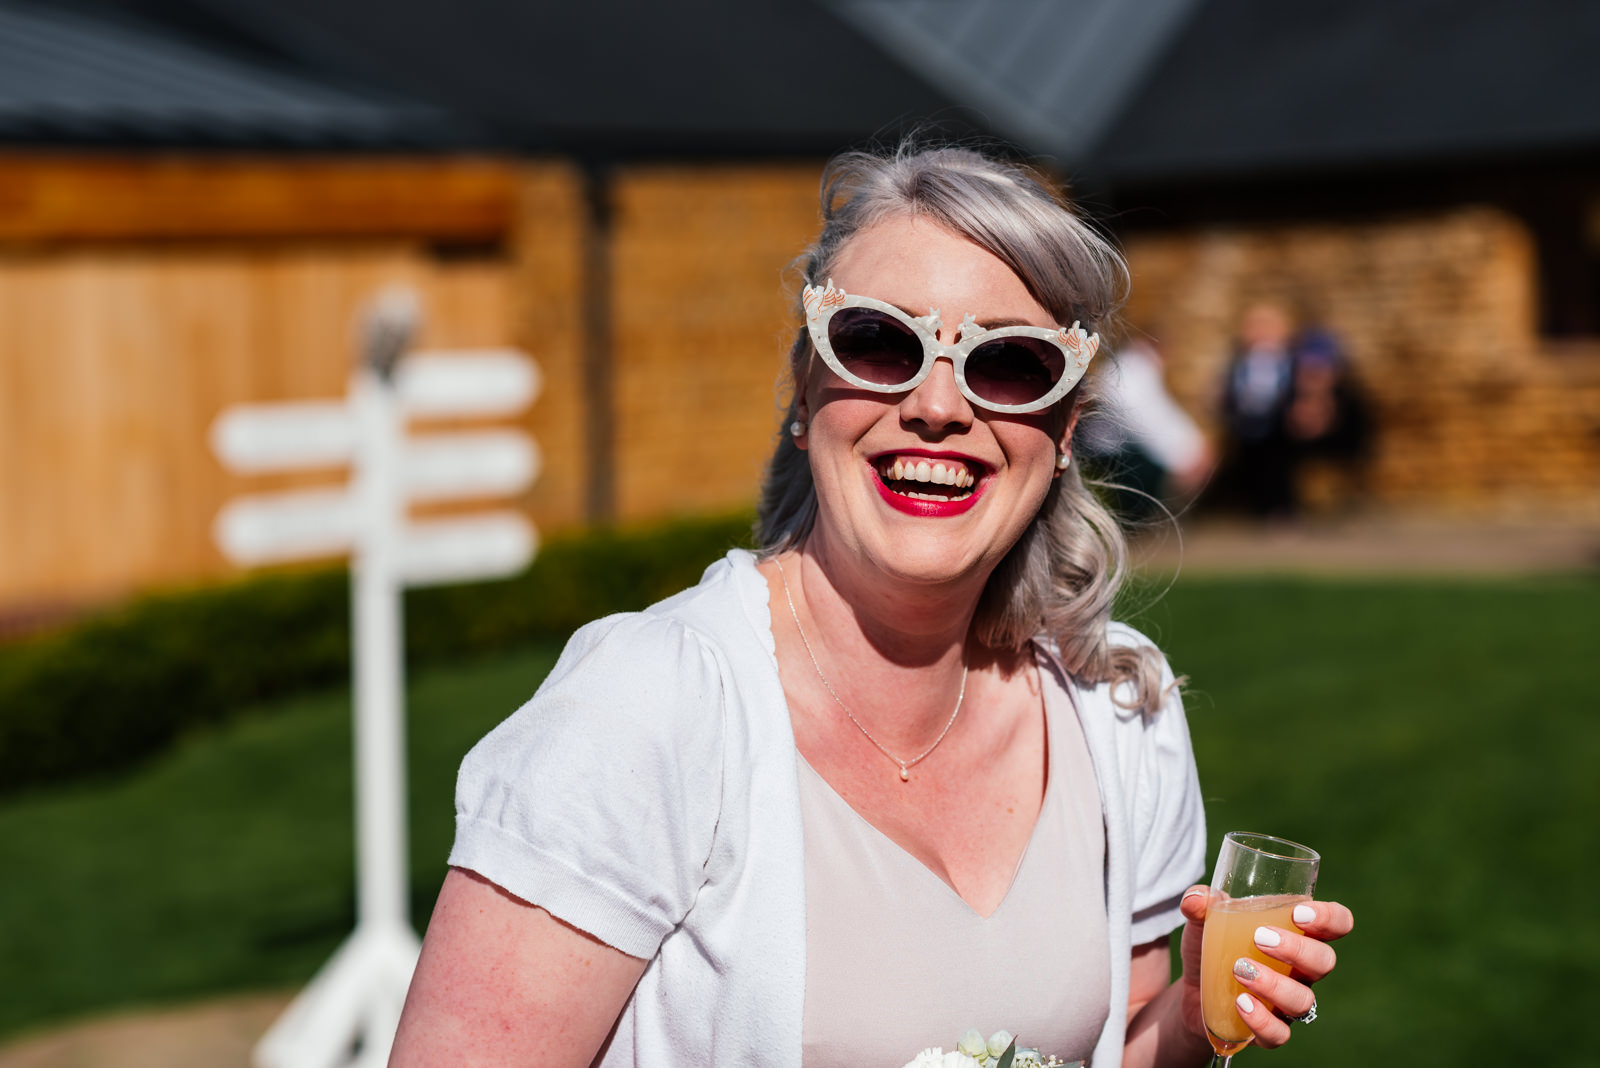 bridesmaid with sunglasses on smiling